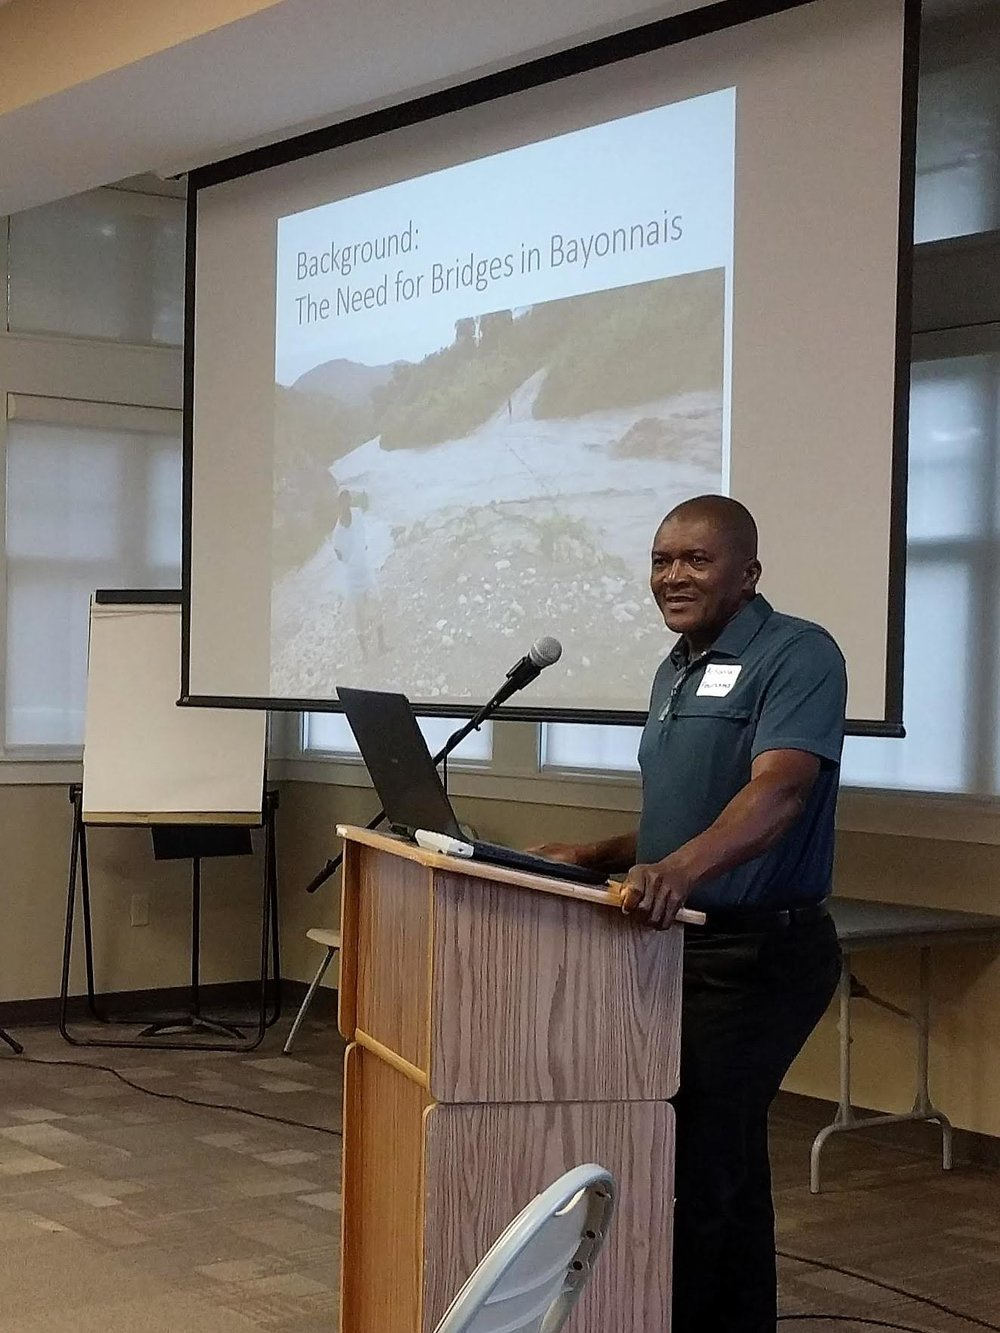 Pastor Actionnel Fleurisma, director of OFCB Ministries, talks about the need for the proposed bridges project in the Bayonnais Valley of Haiti.